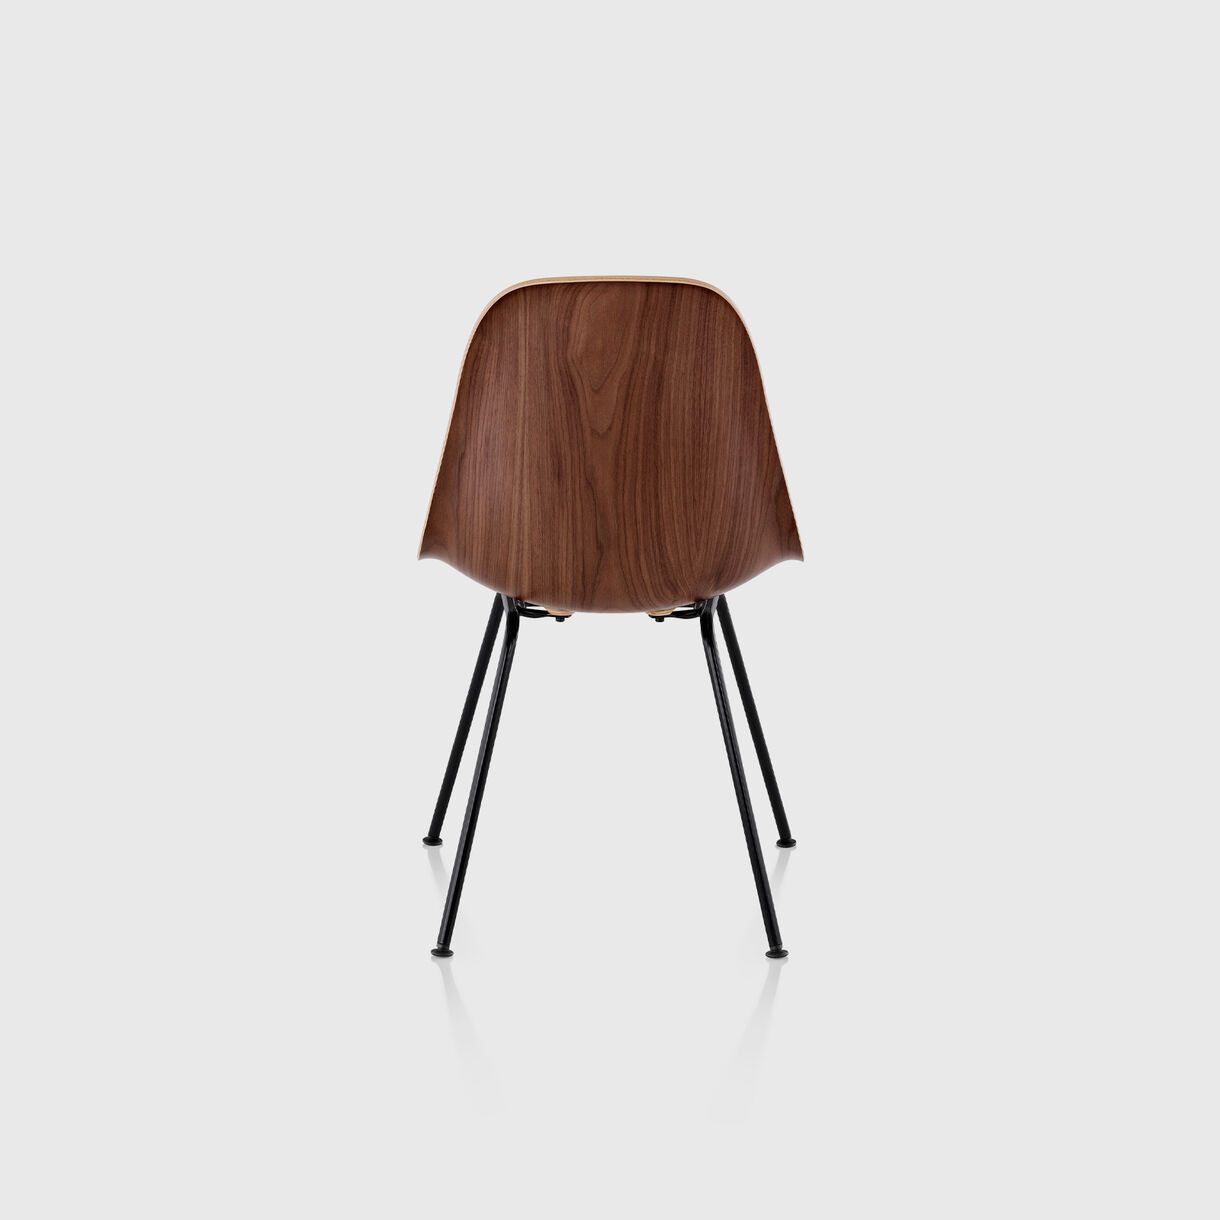 Eames Moulded Wood Side Chair, 4-Leg Base